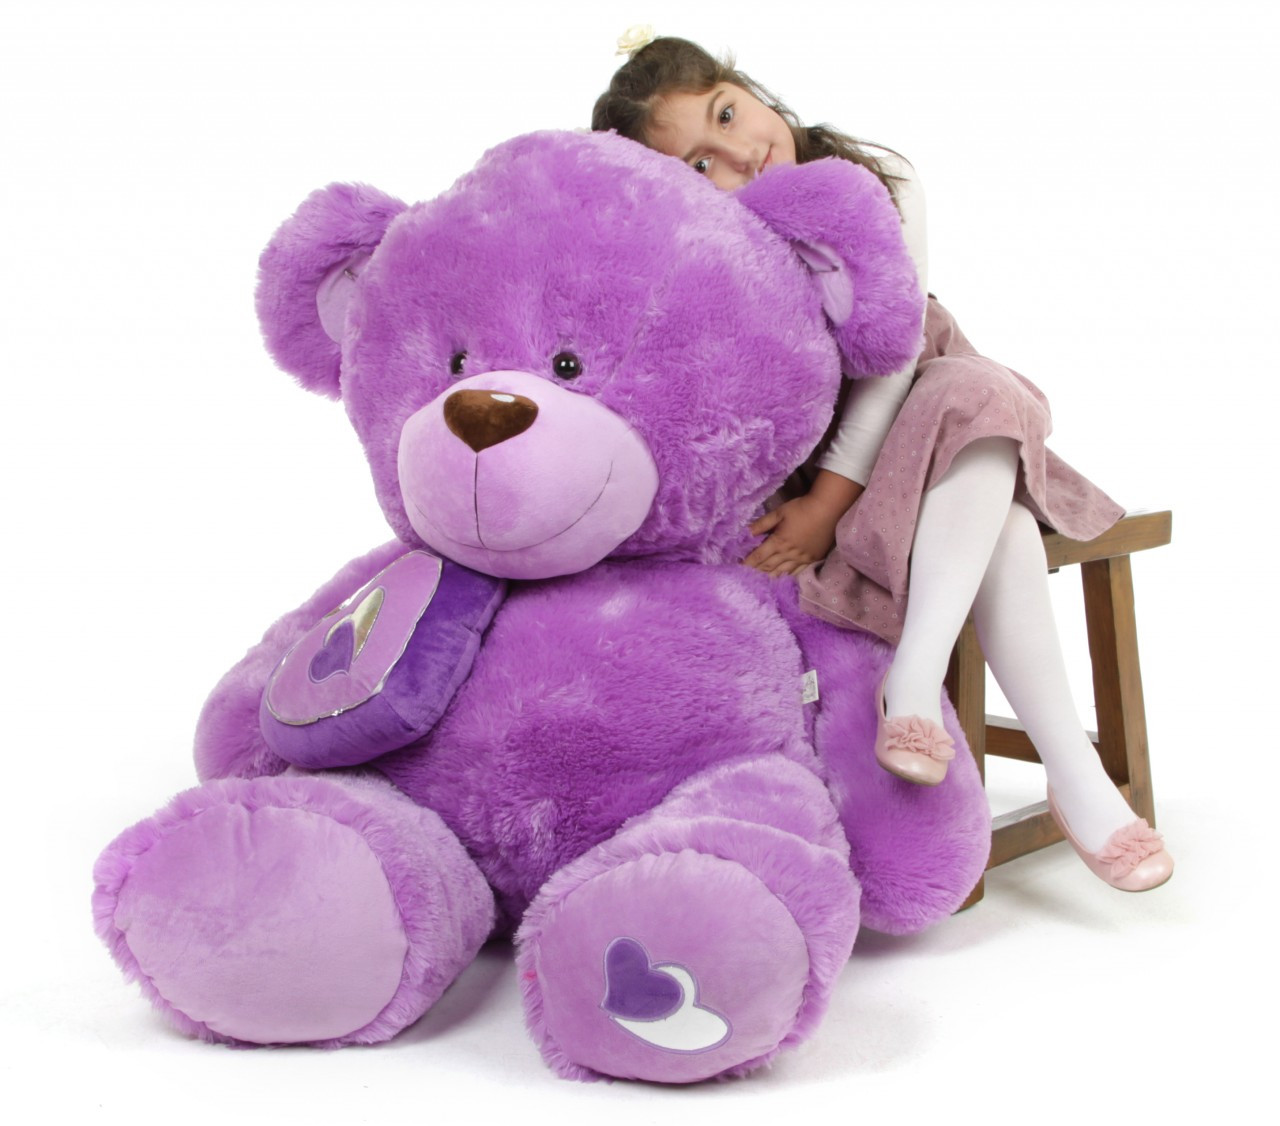 Sewsie Big Love Huge Huggable Lavender Teddy Bear 47 in